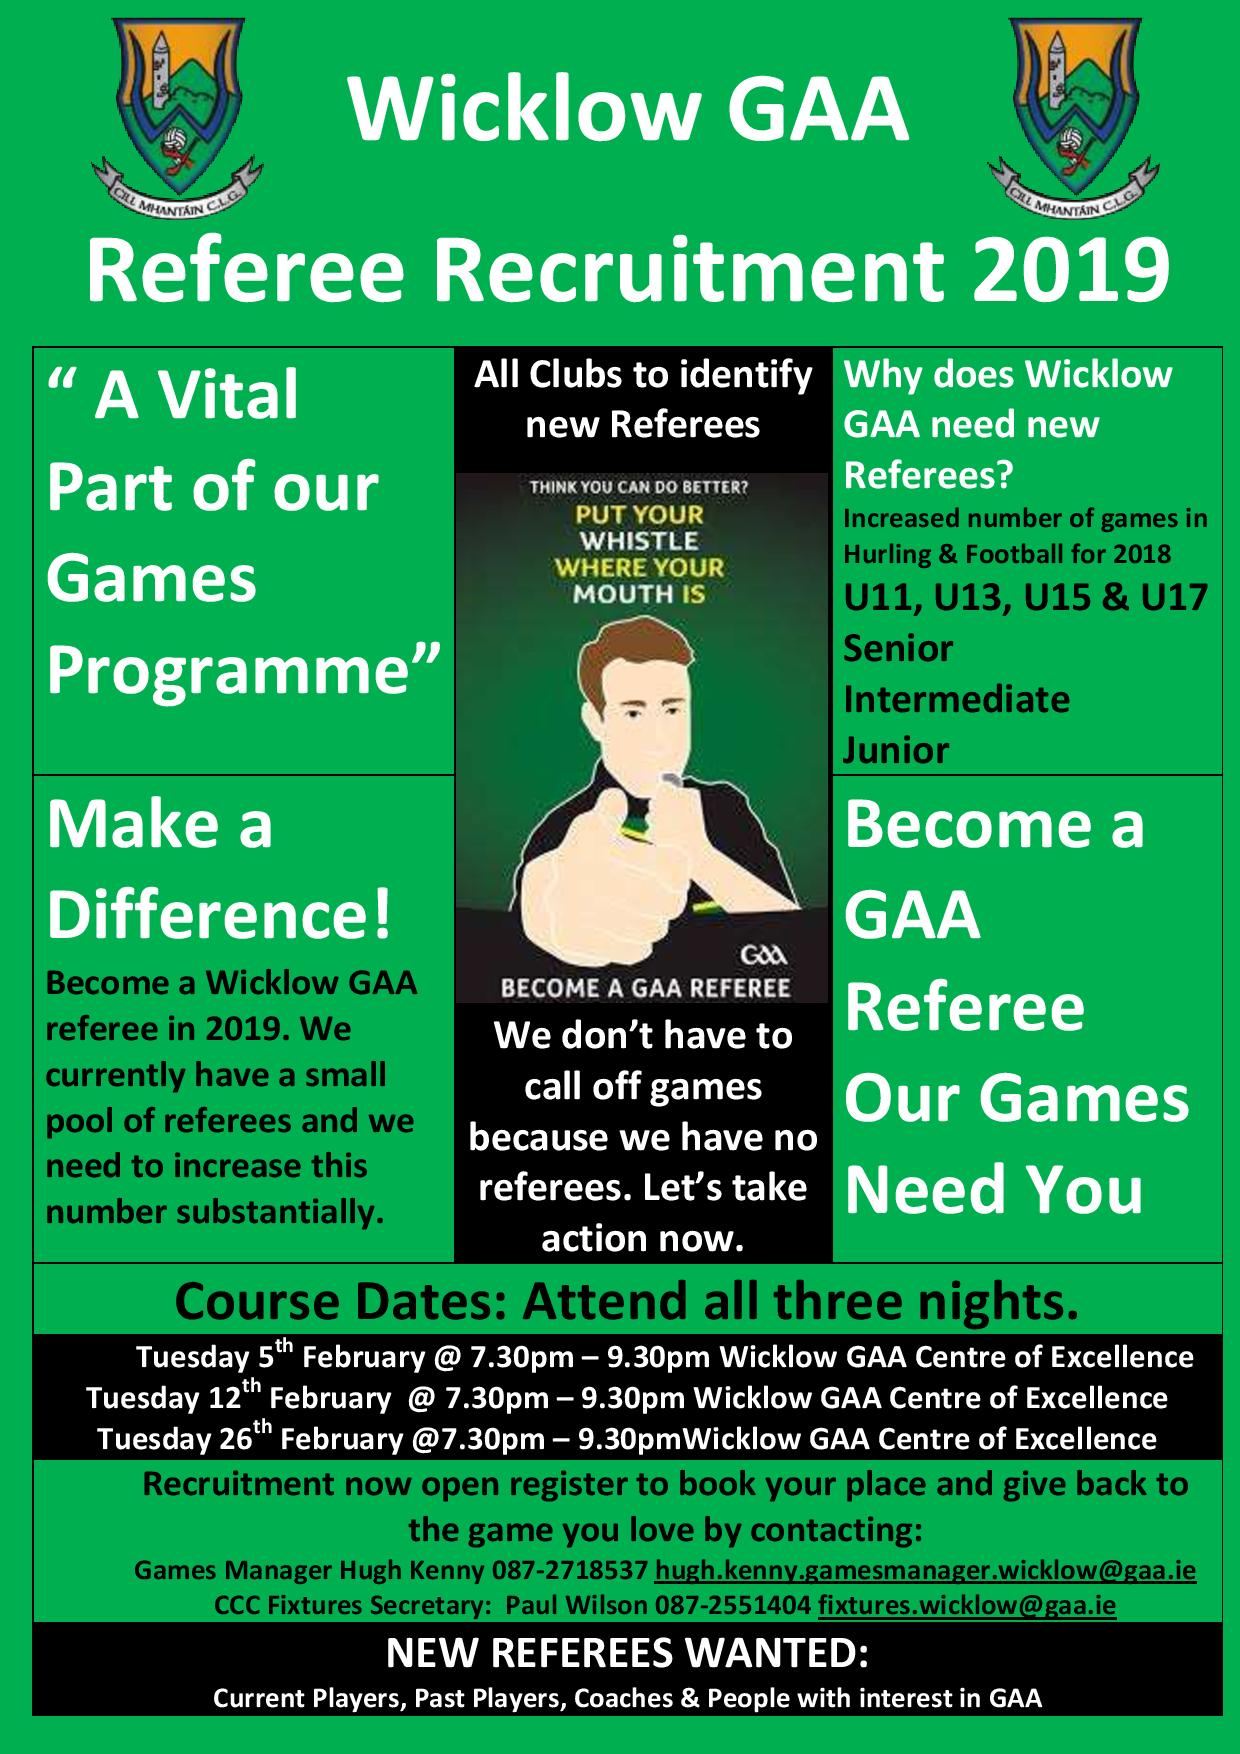 Make a difference by becoming a Wicklow GAA Referee in 2019.